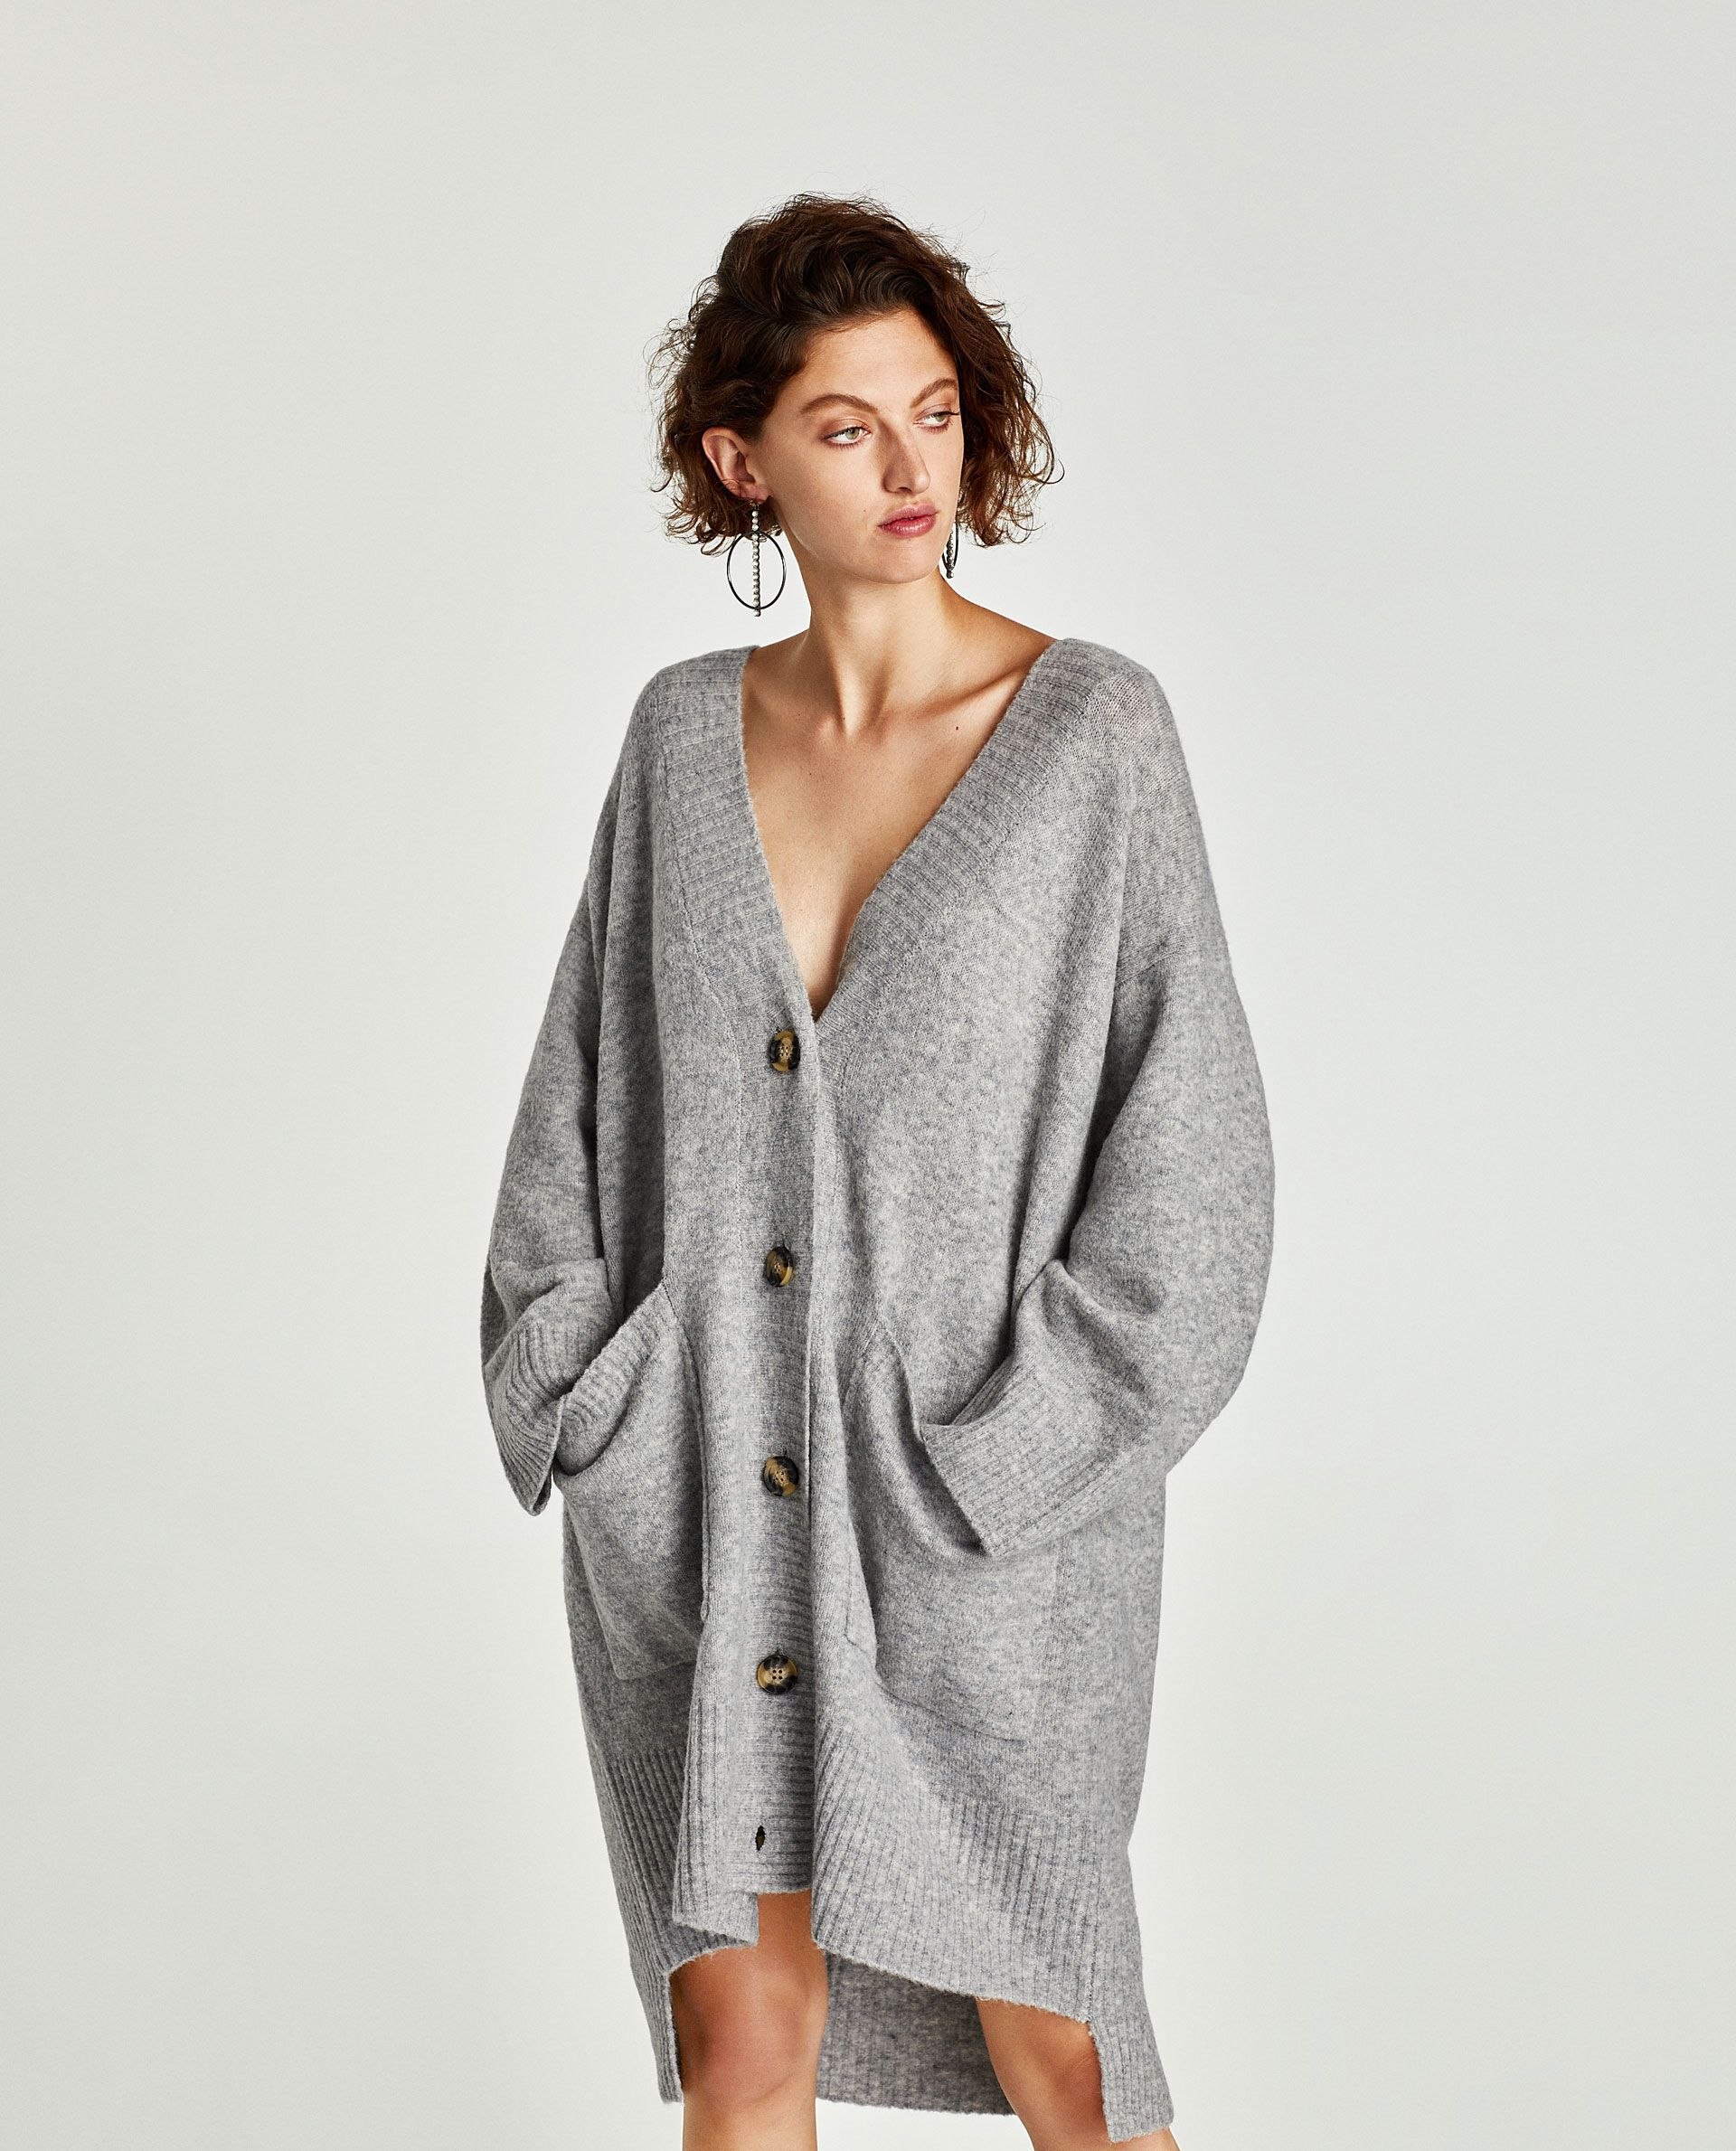 87da9e0758 Zara AW17 grey oversized longline cardigan in wool blend 49% acrylic ...